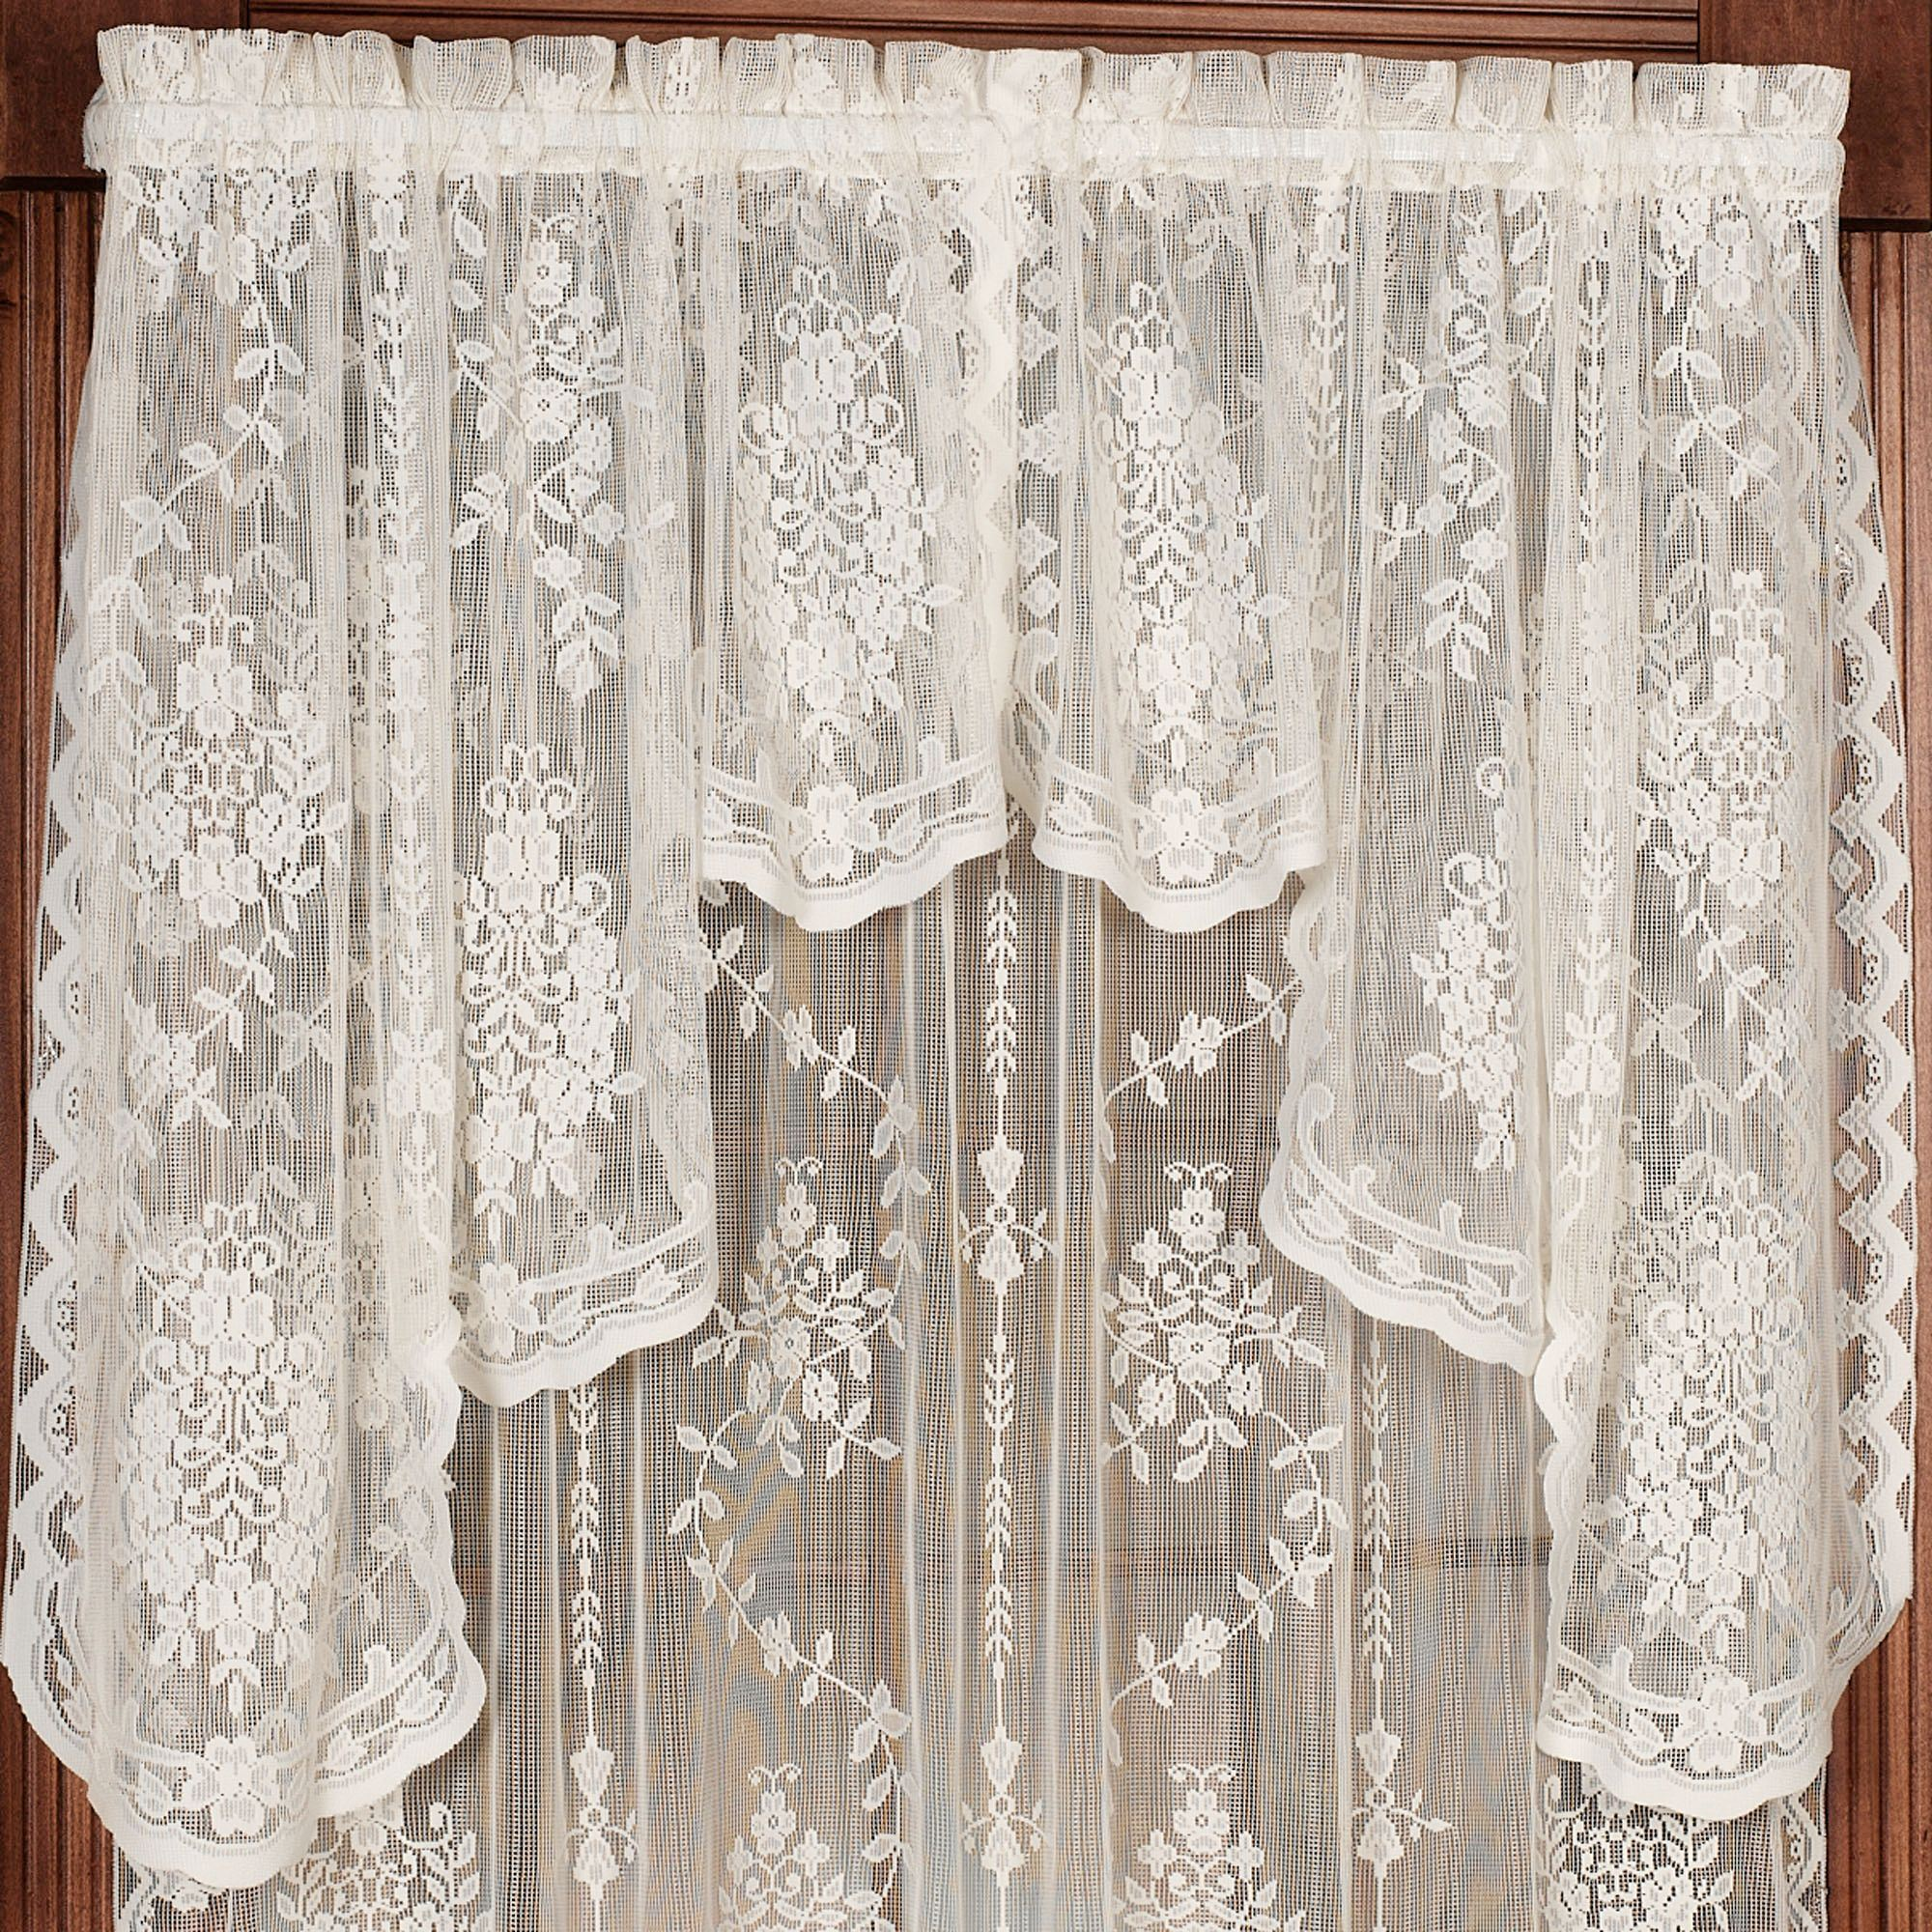 Fiona Scottish Lace Swag Valance Window Treatment